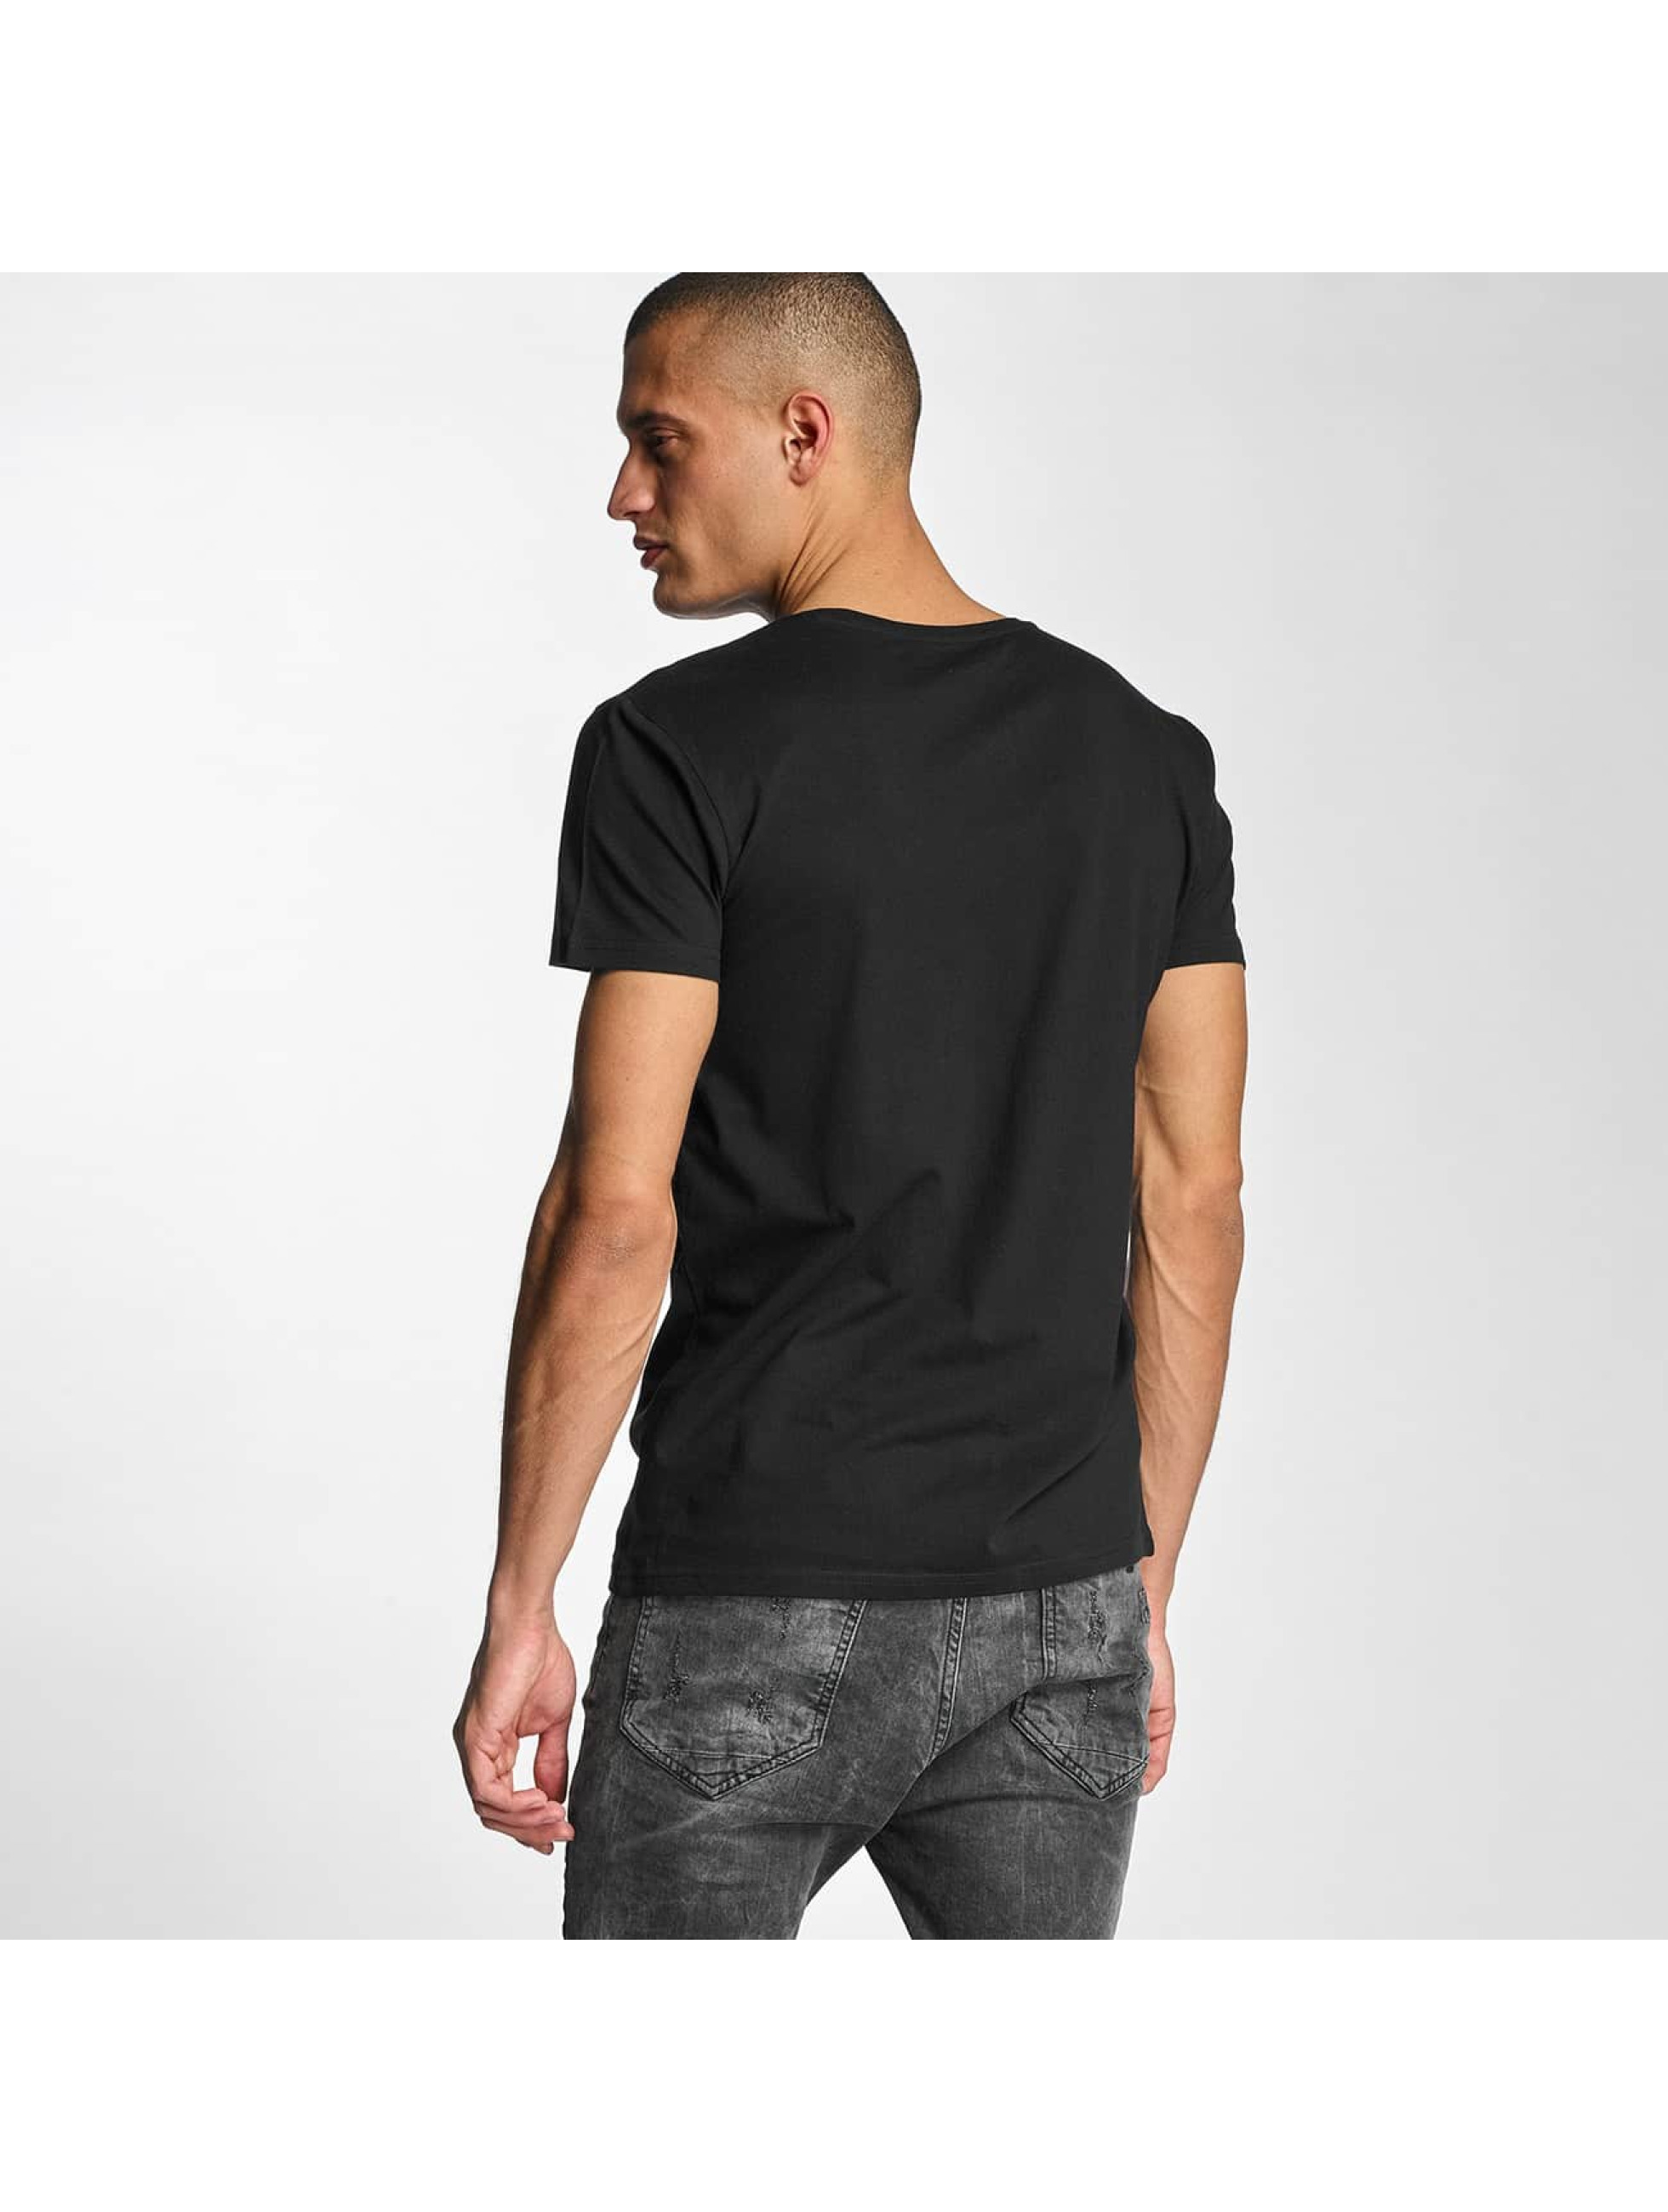 Stitch & Soul T-Shirt Hang Around black